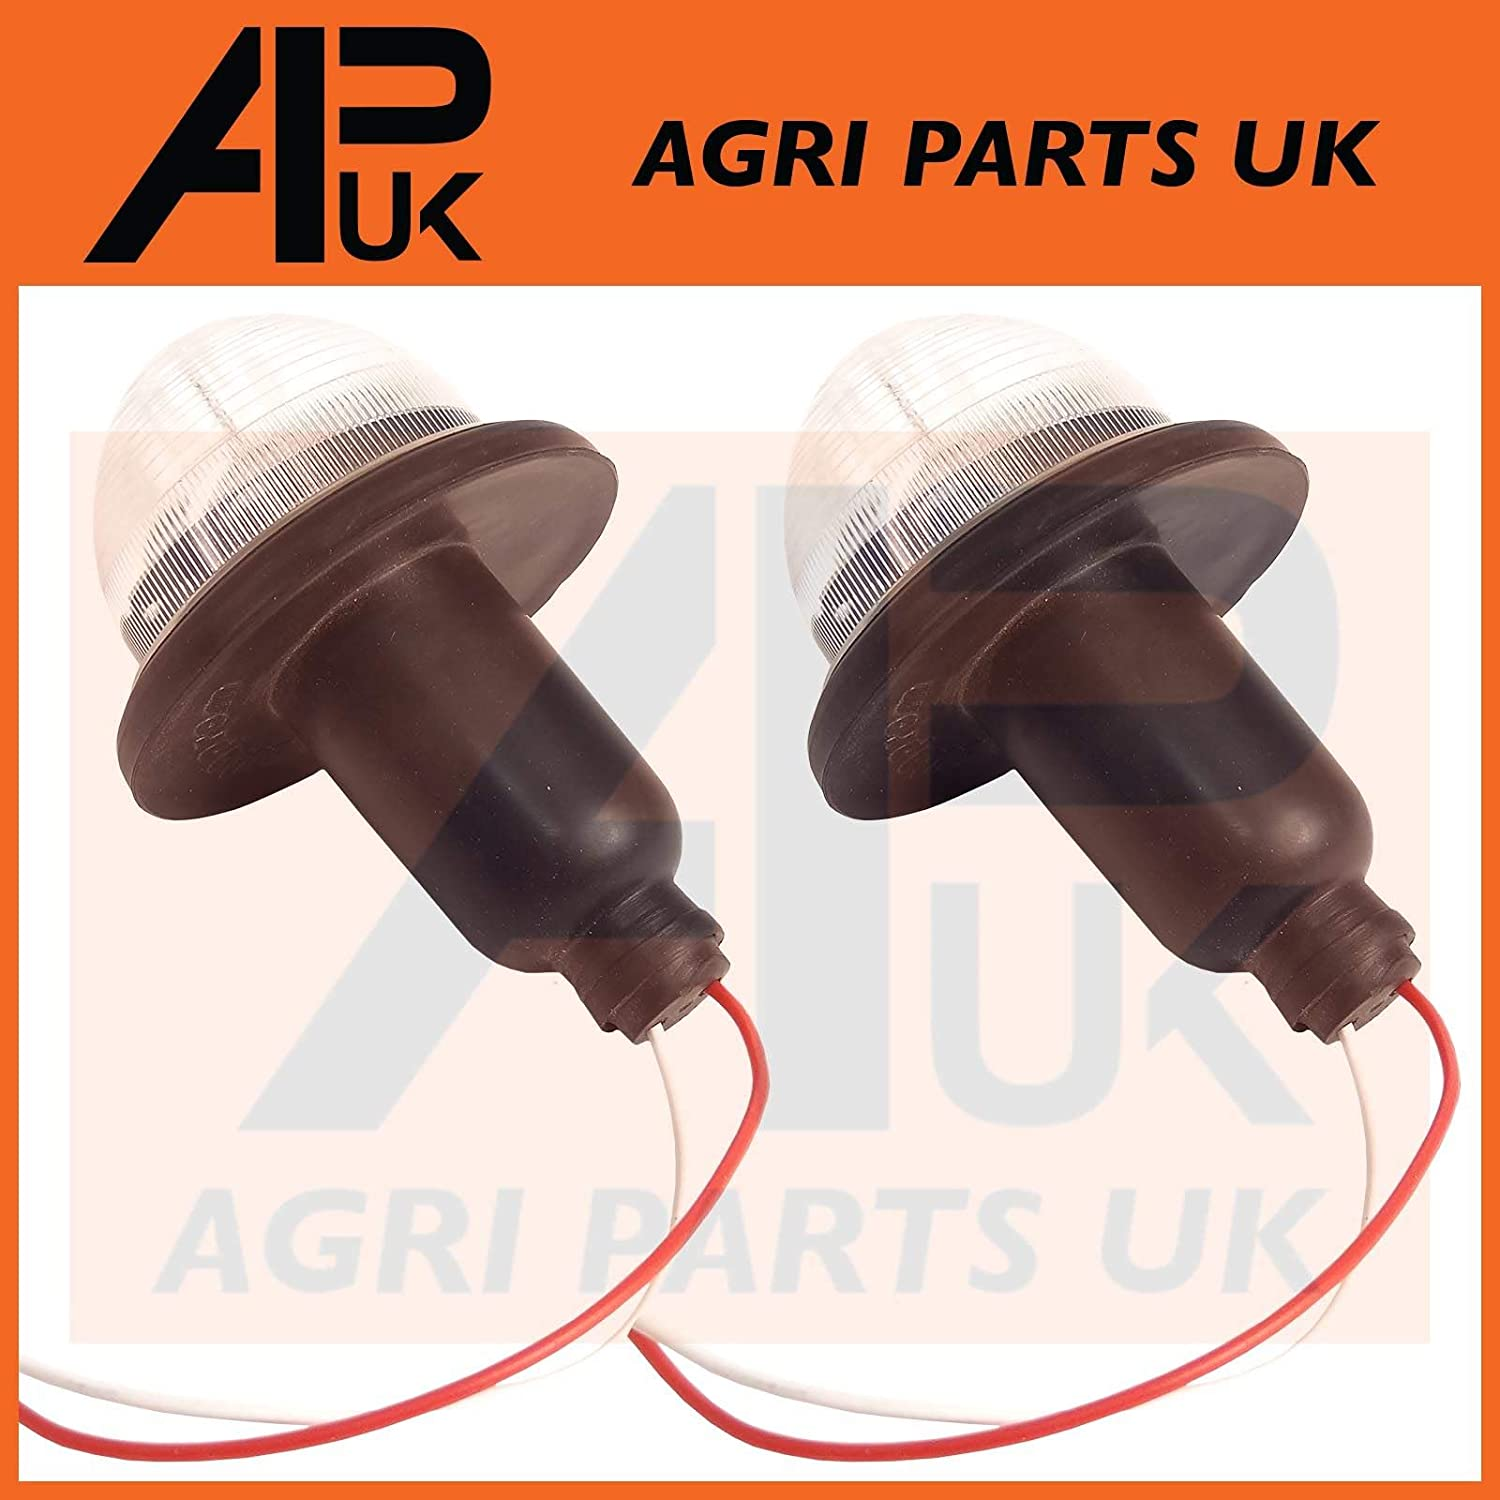 APUK PAIR Fender Side Lights Marker Lamps Compatible with Massey Ferguson 135 148 165 175 188 Tractor